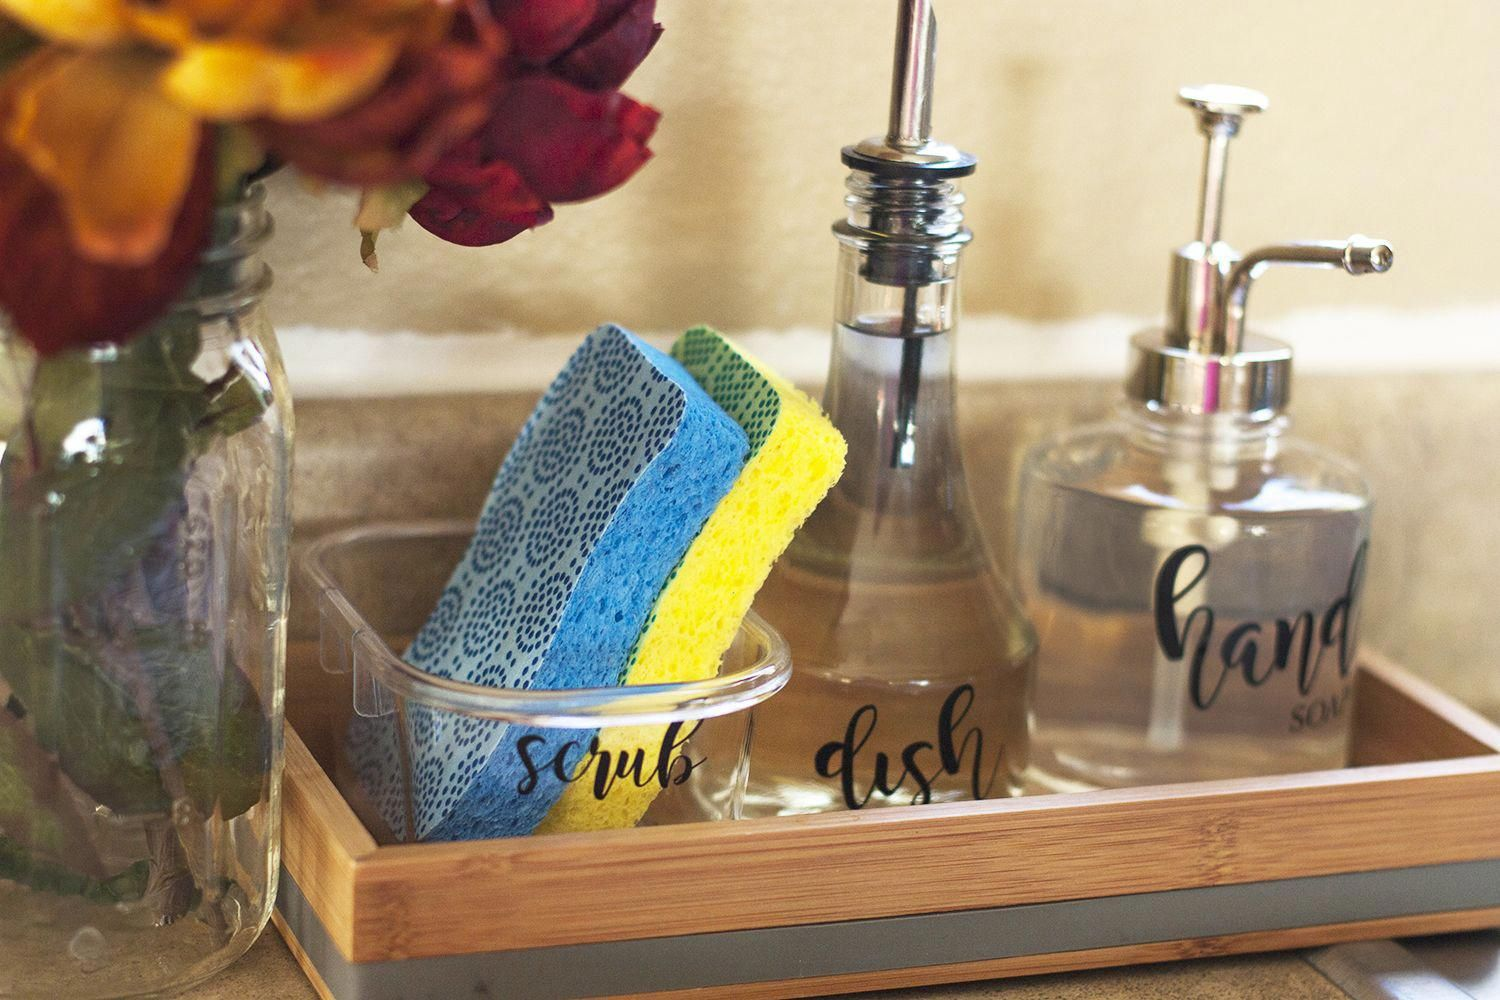 Check Out This Pretty Organized Kitchen Sink Love The Idea Of A Sink Side Tray For Organizing D Kitchen Soap Dispenser Kitchen Sink Decor Soap Dispenser Diy